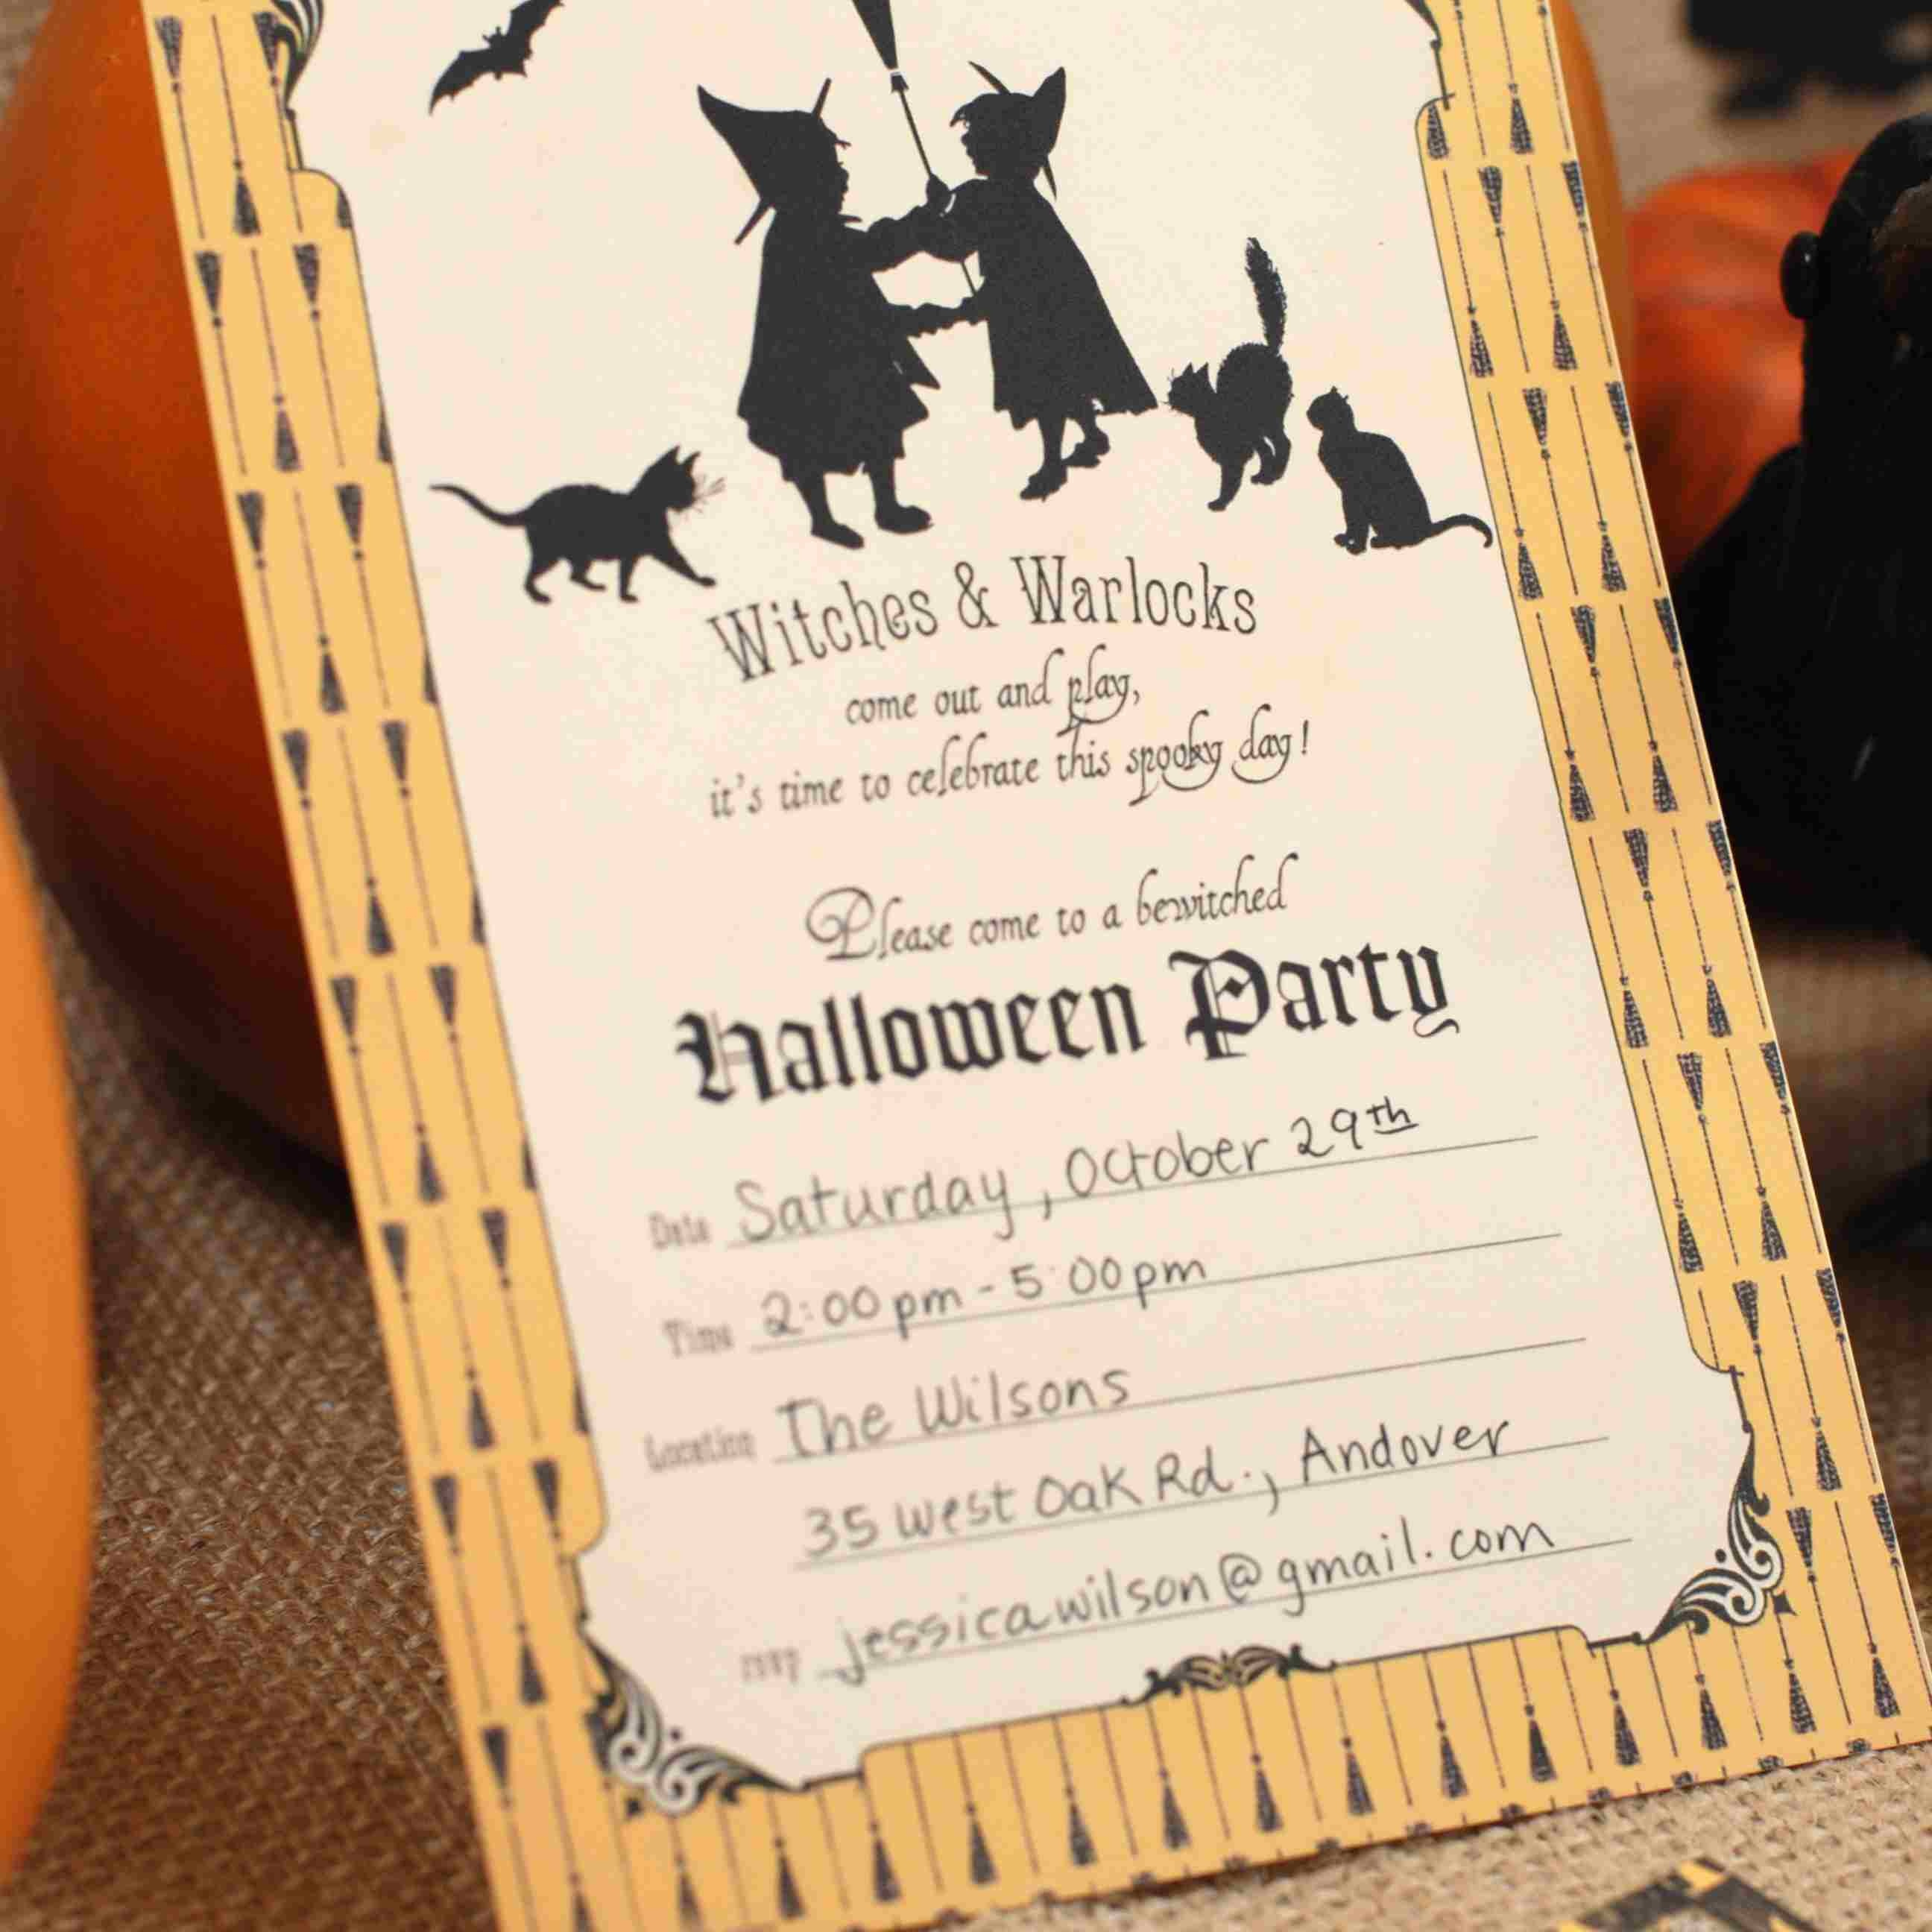 17 Free Halloween Invitations You Can Print From Home - Free Printable Halloween Invitations For Adults